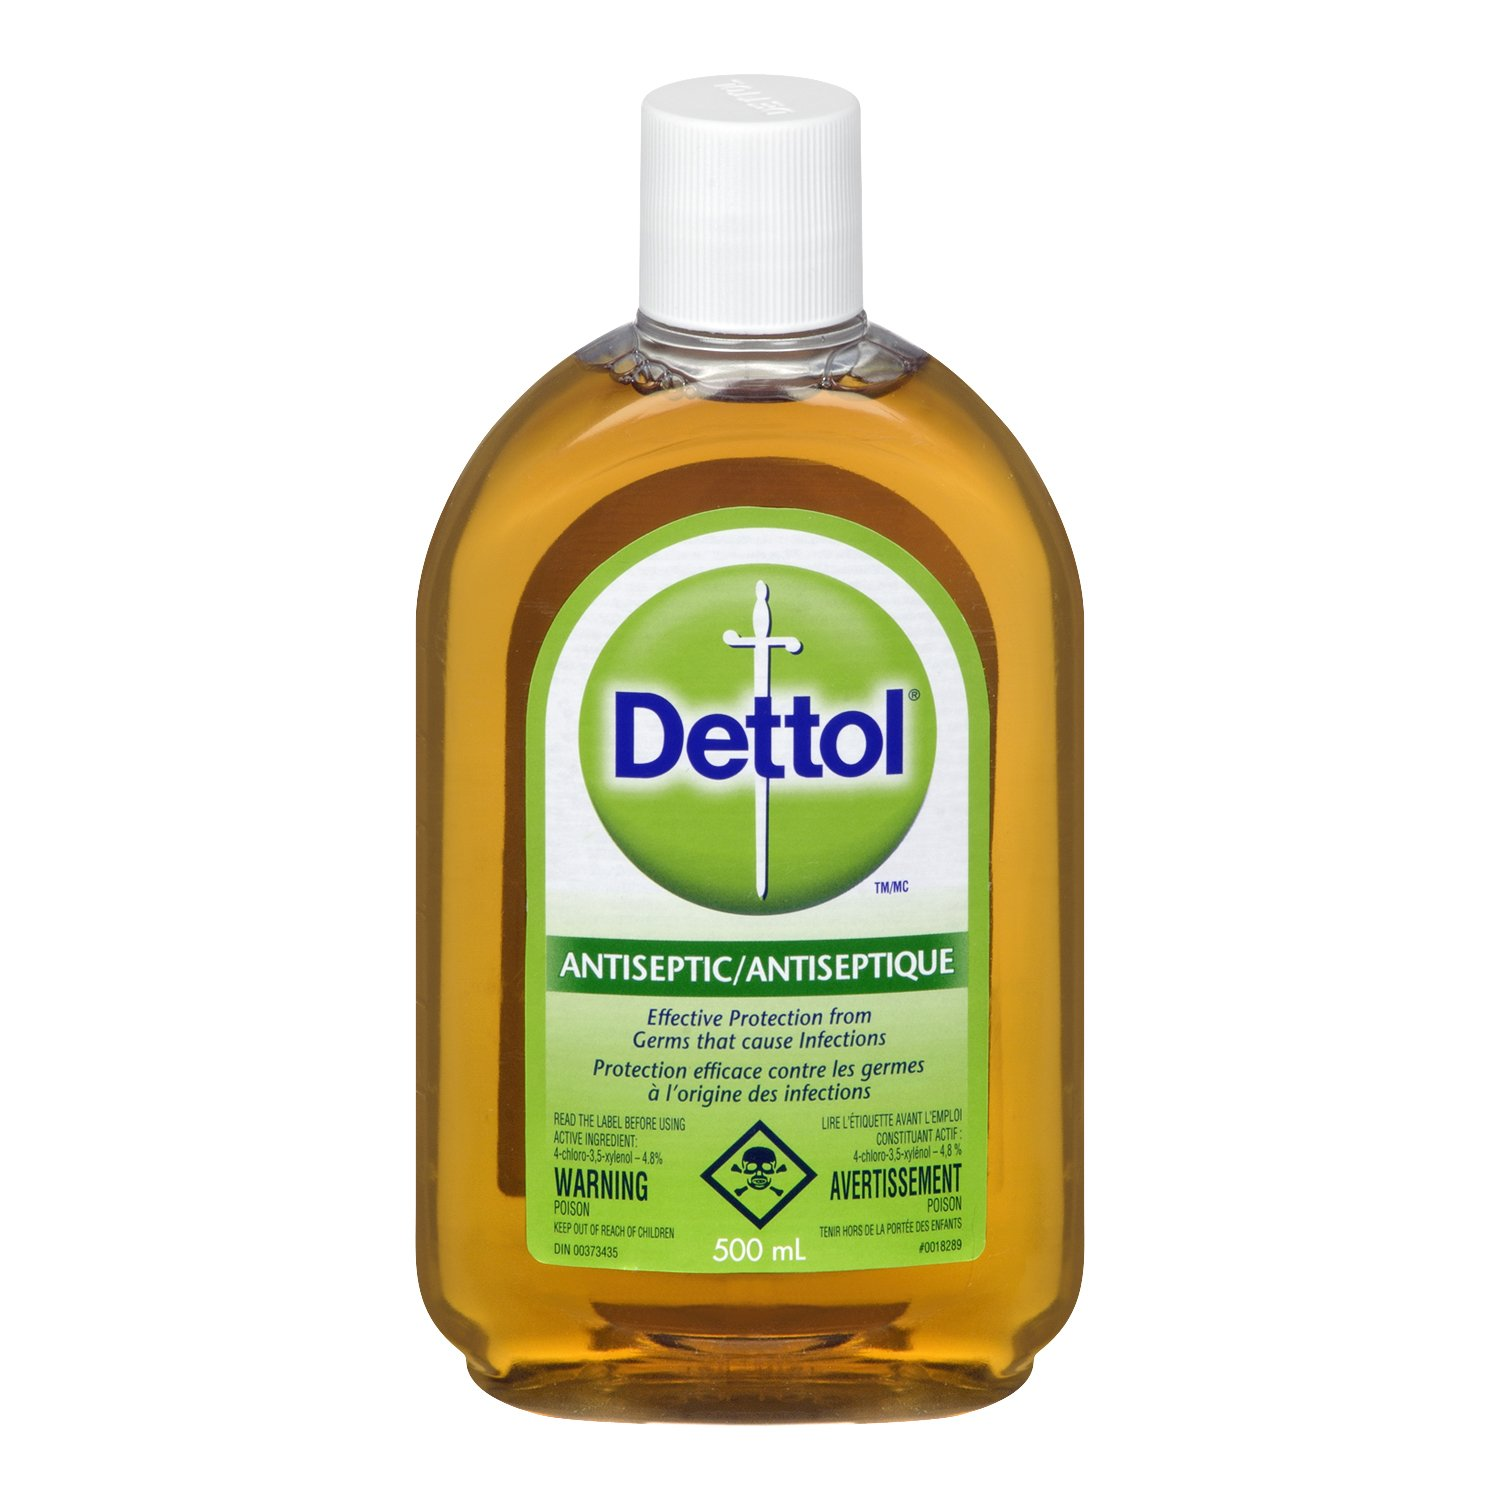 Dettol Antiseptic Infection Causing Germs Protective Liquid 16.90 FL OZ, 500 ML